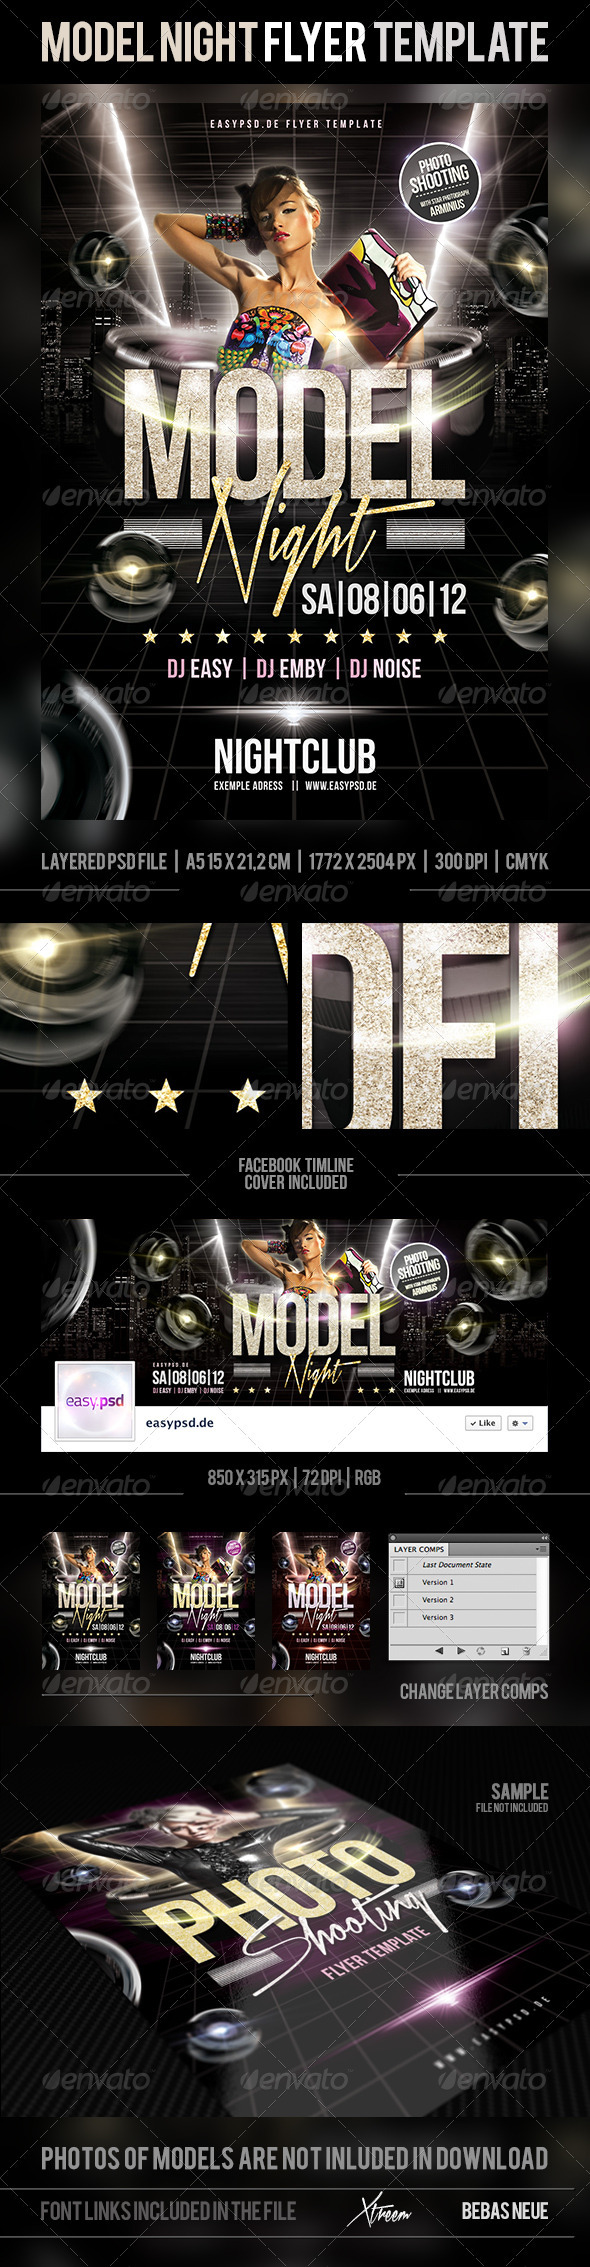 Model Night Flyer Template - Clubs & Parties Events